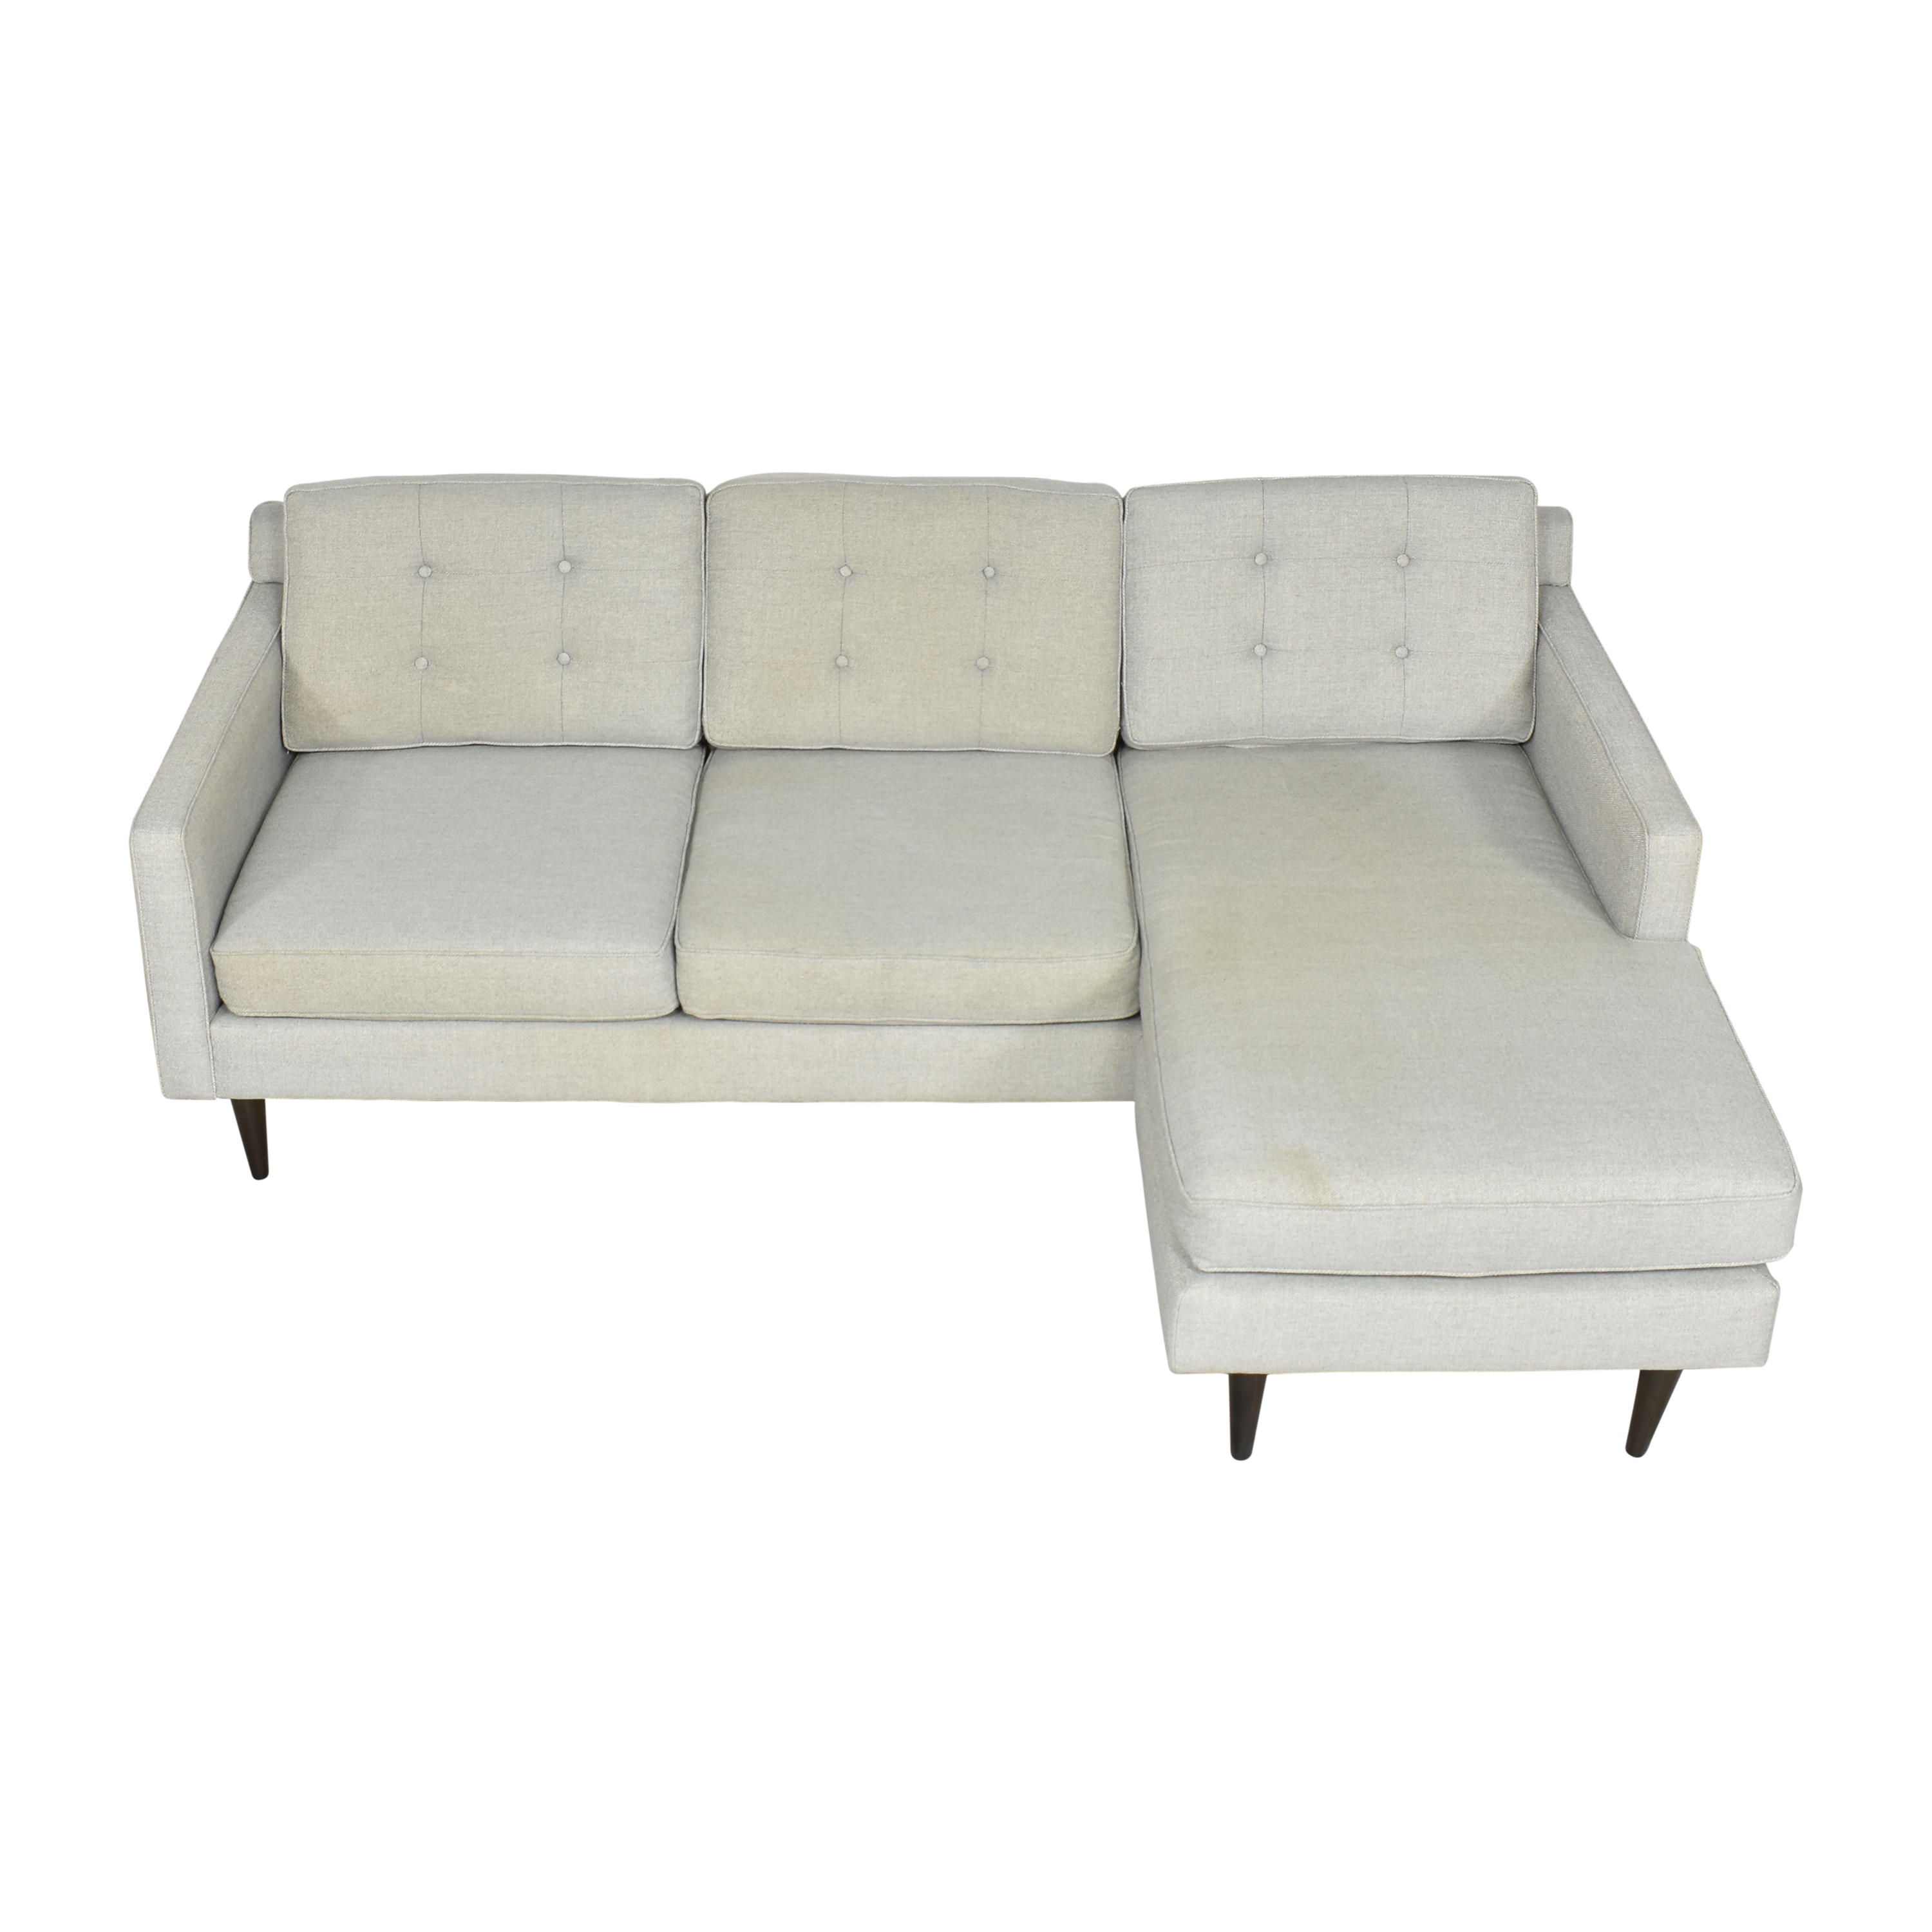 West Elm Drake Reversible Sectional / Sectionals